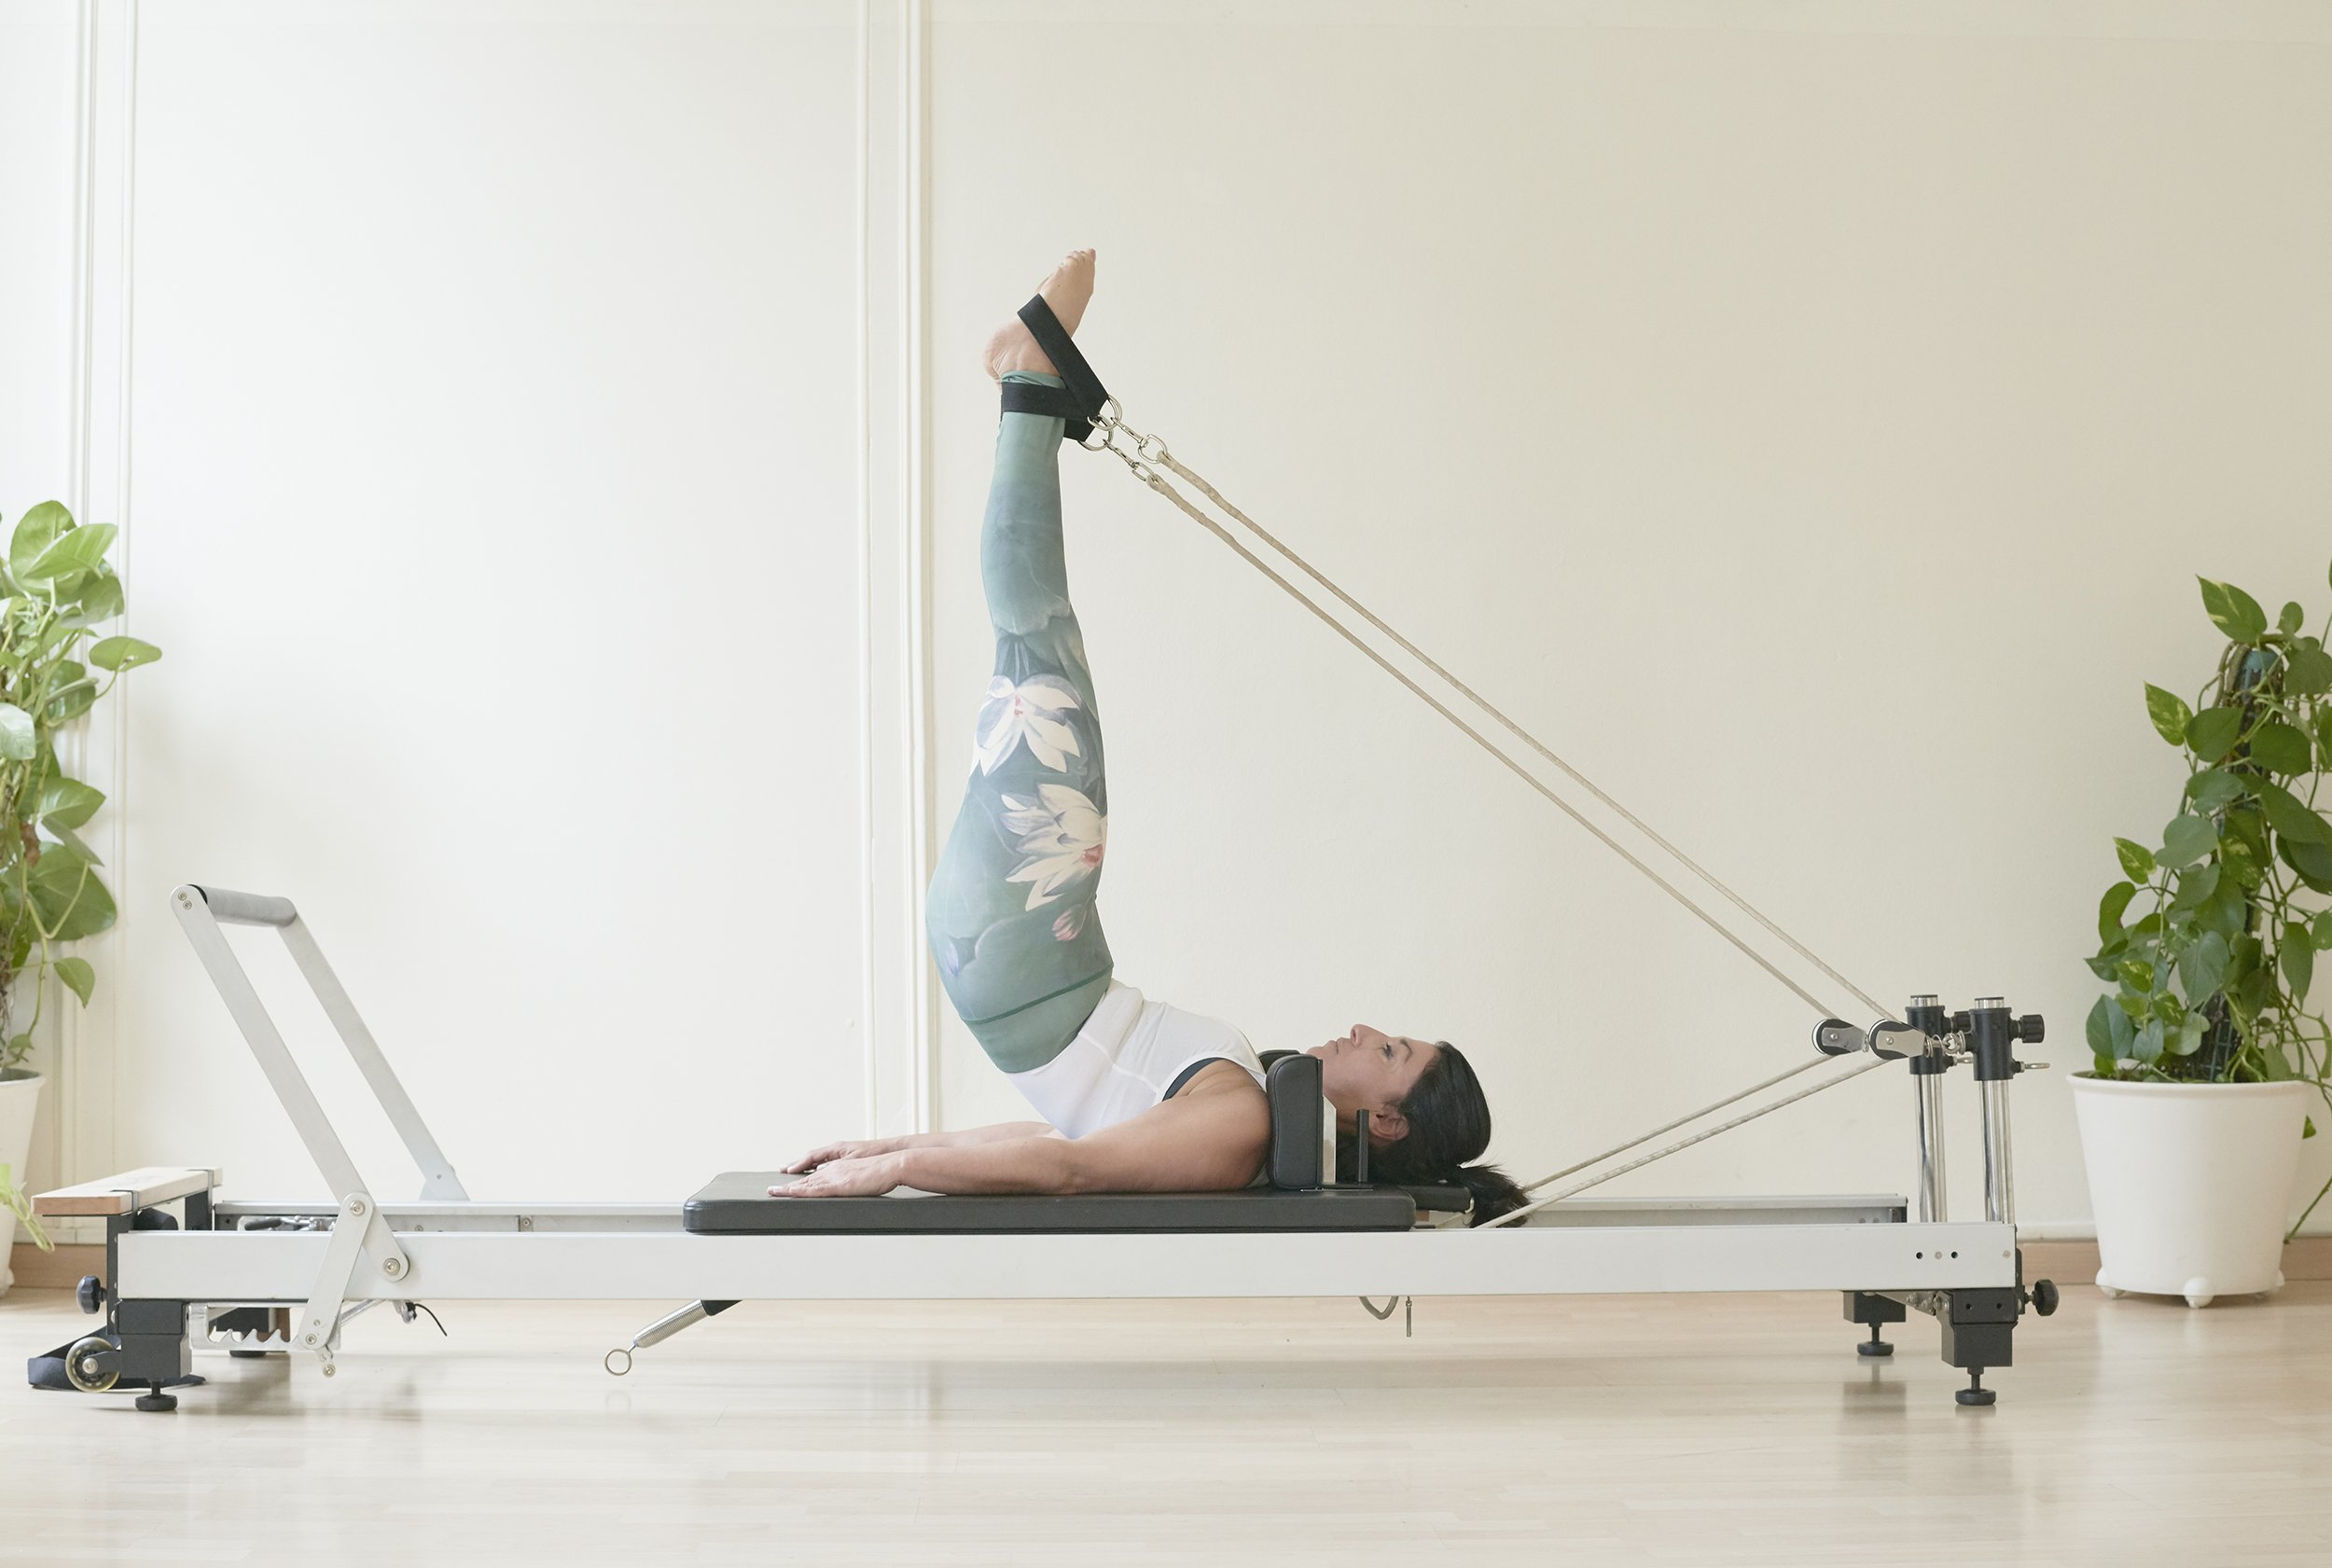 Falling in Love with Pilates.